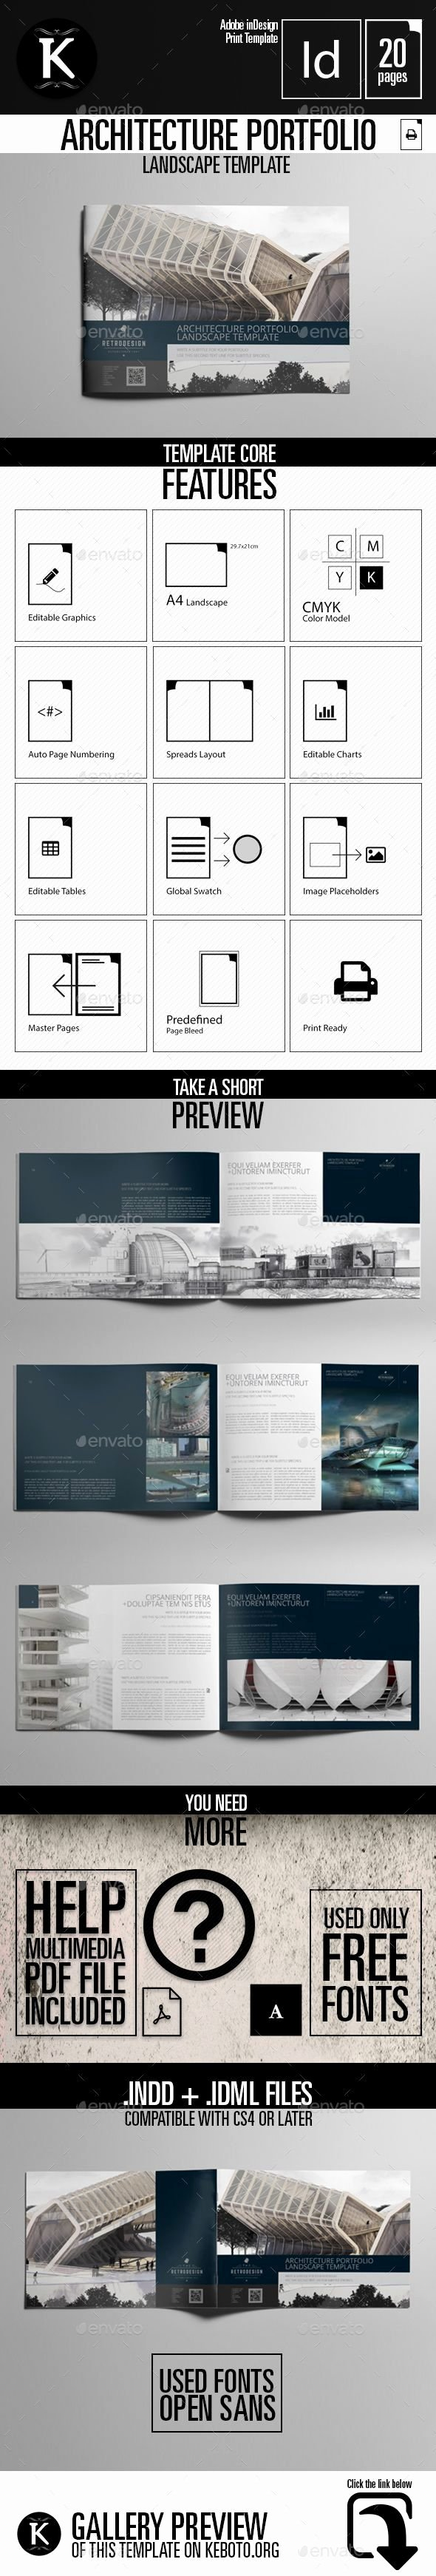 Architecture Portfolio Template Indesign Inspirational Landscape Architecture Portfolio issuu Download Books